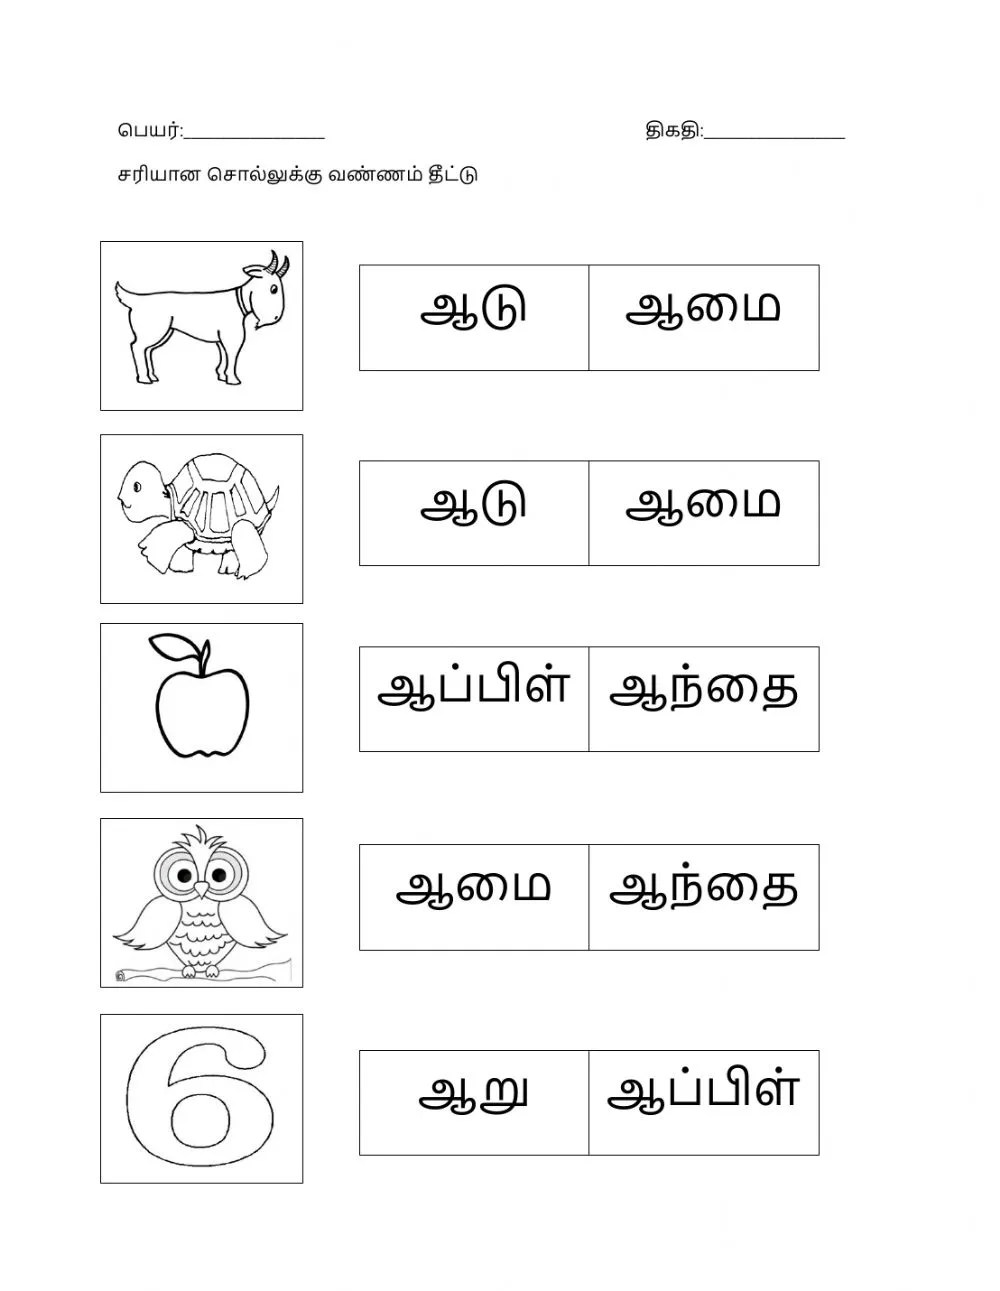 hight resolution of Get Tamil Worksheet For Grade 6 Pics – Tunnel To Viaduct Run